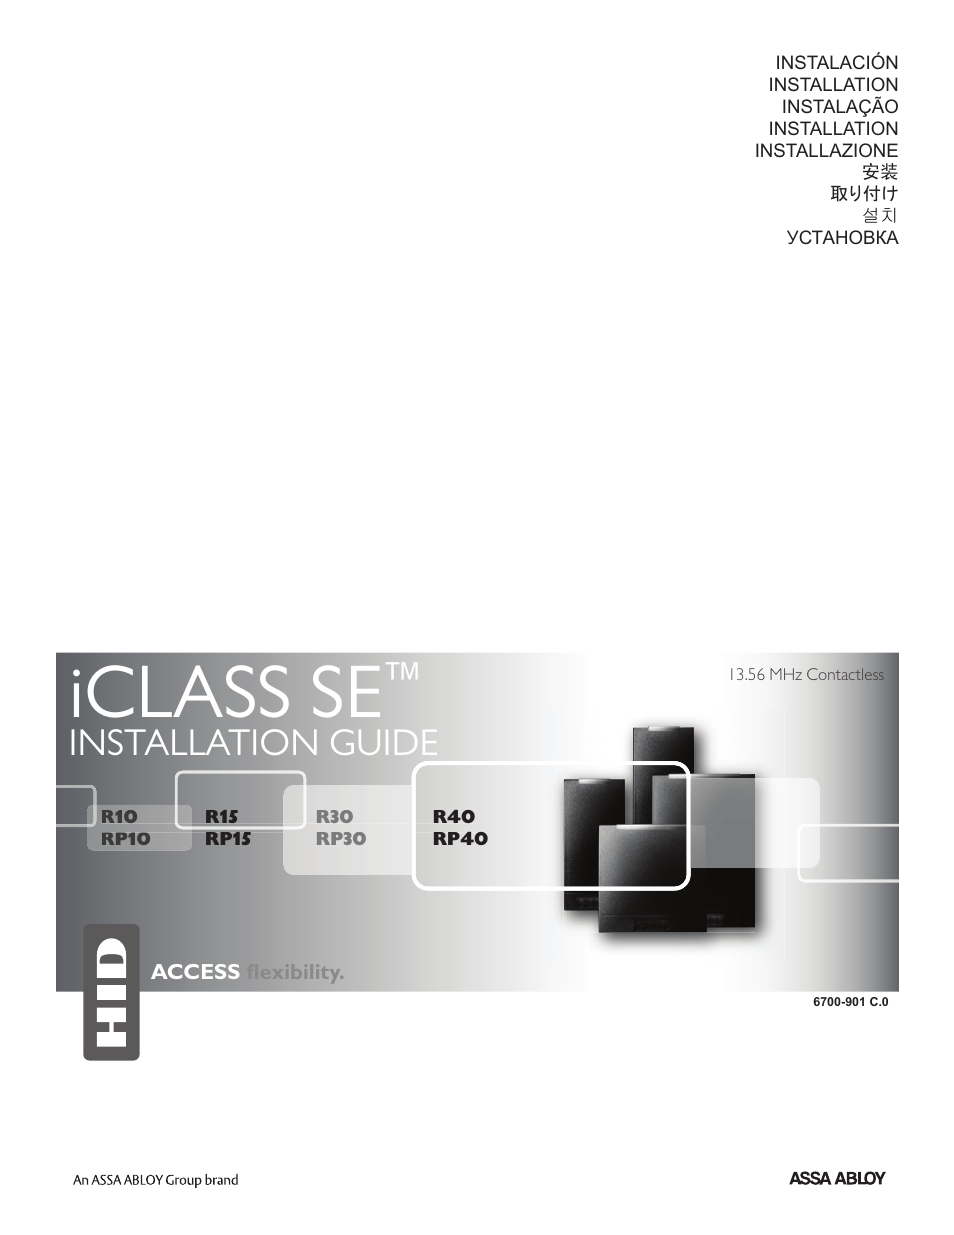 Hid Iclass Se Installation Guide User Manual 10 Pages Access Wiring Diagram